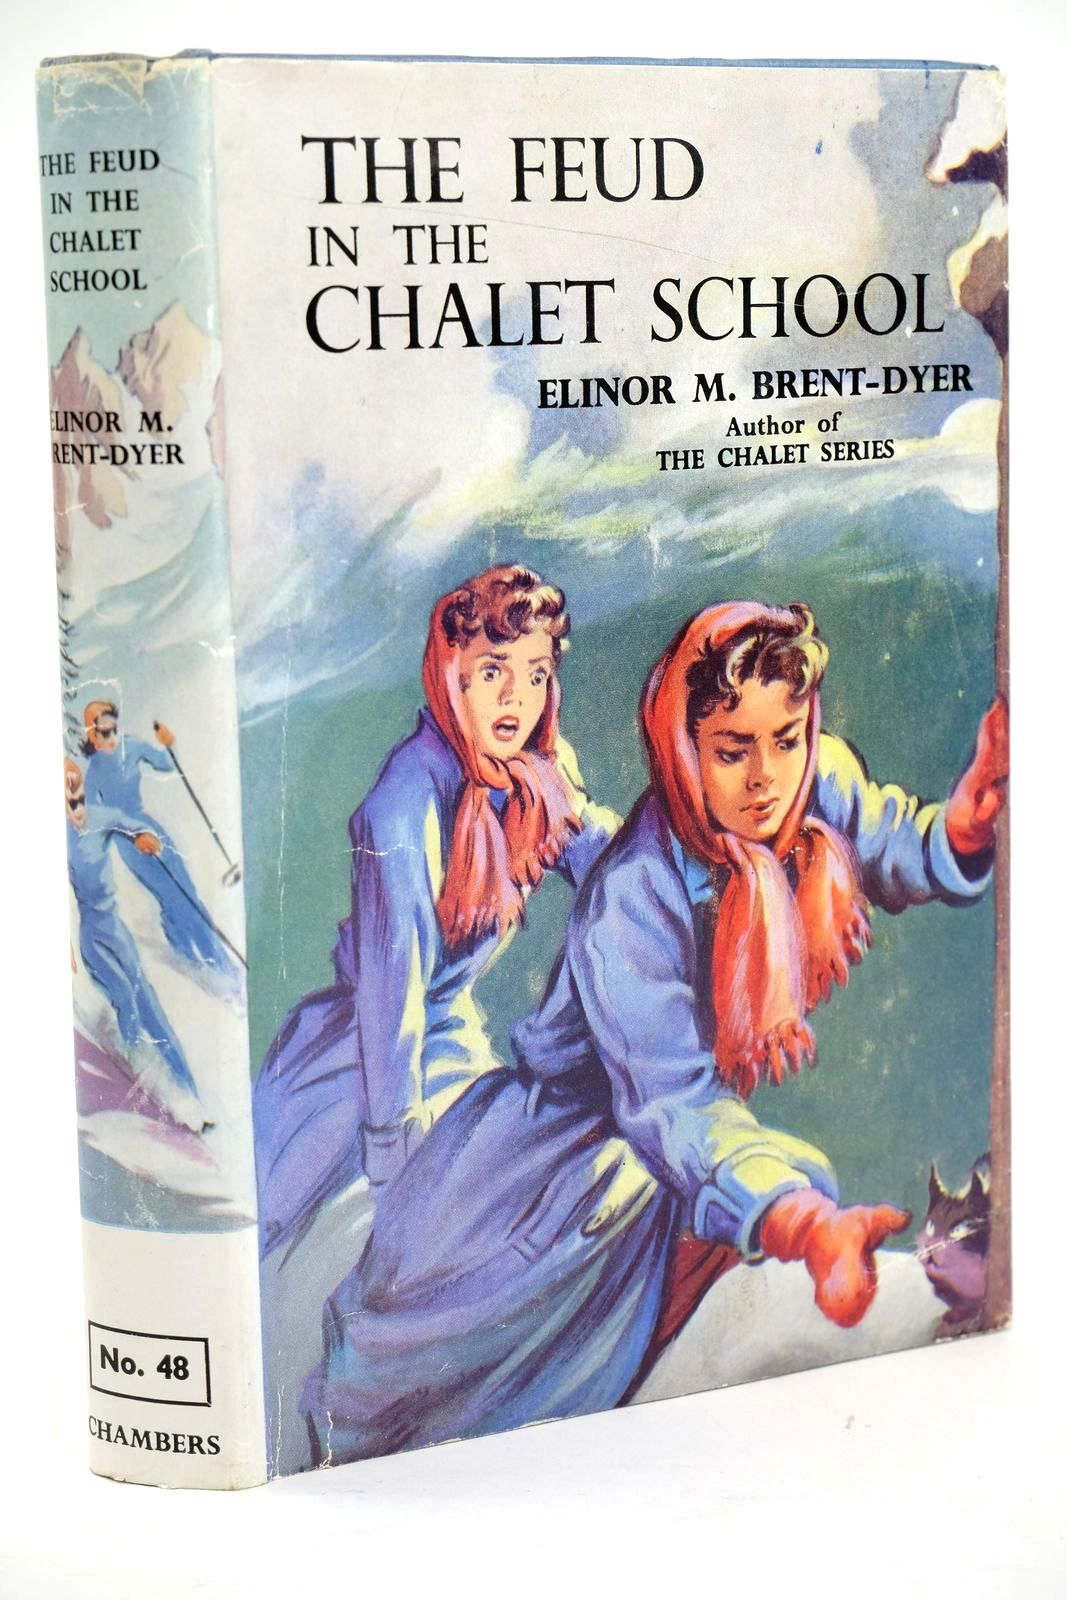 Photo of THE FEUD IN THE CHALET SCHOOL written by Brent-Dyer, Elinor M. illustrated by Brook, D. published by W. & R. Chambers Limited (STOCK CODE: 1319458)  for sale by Stella & Rose's Books